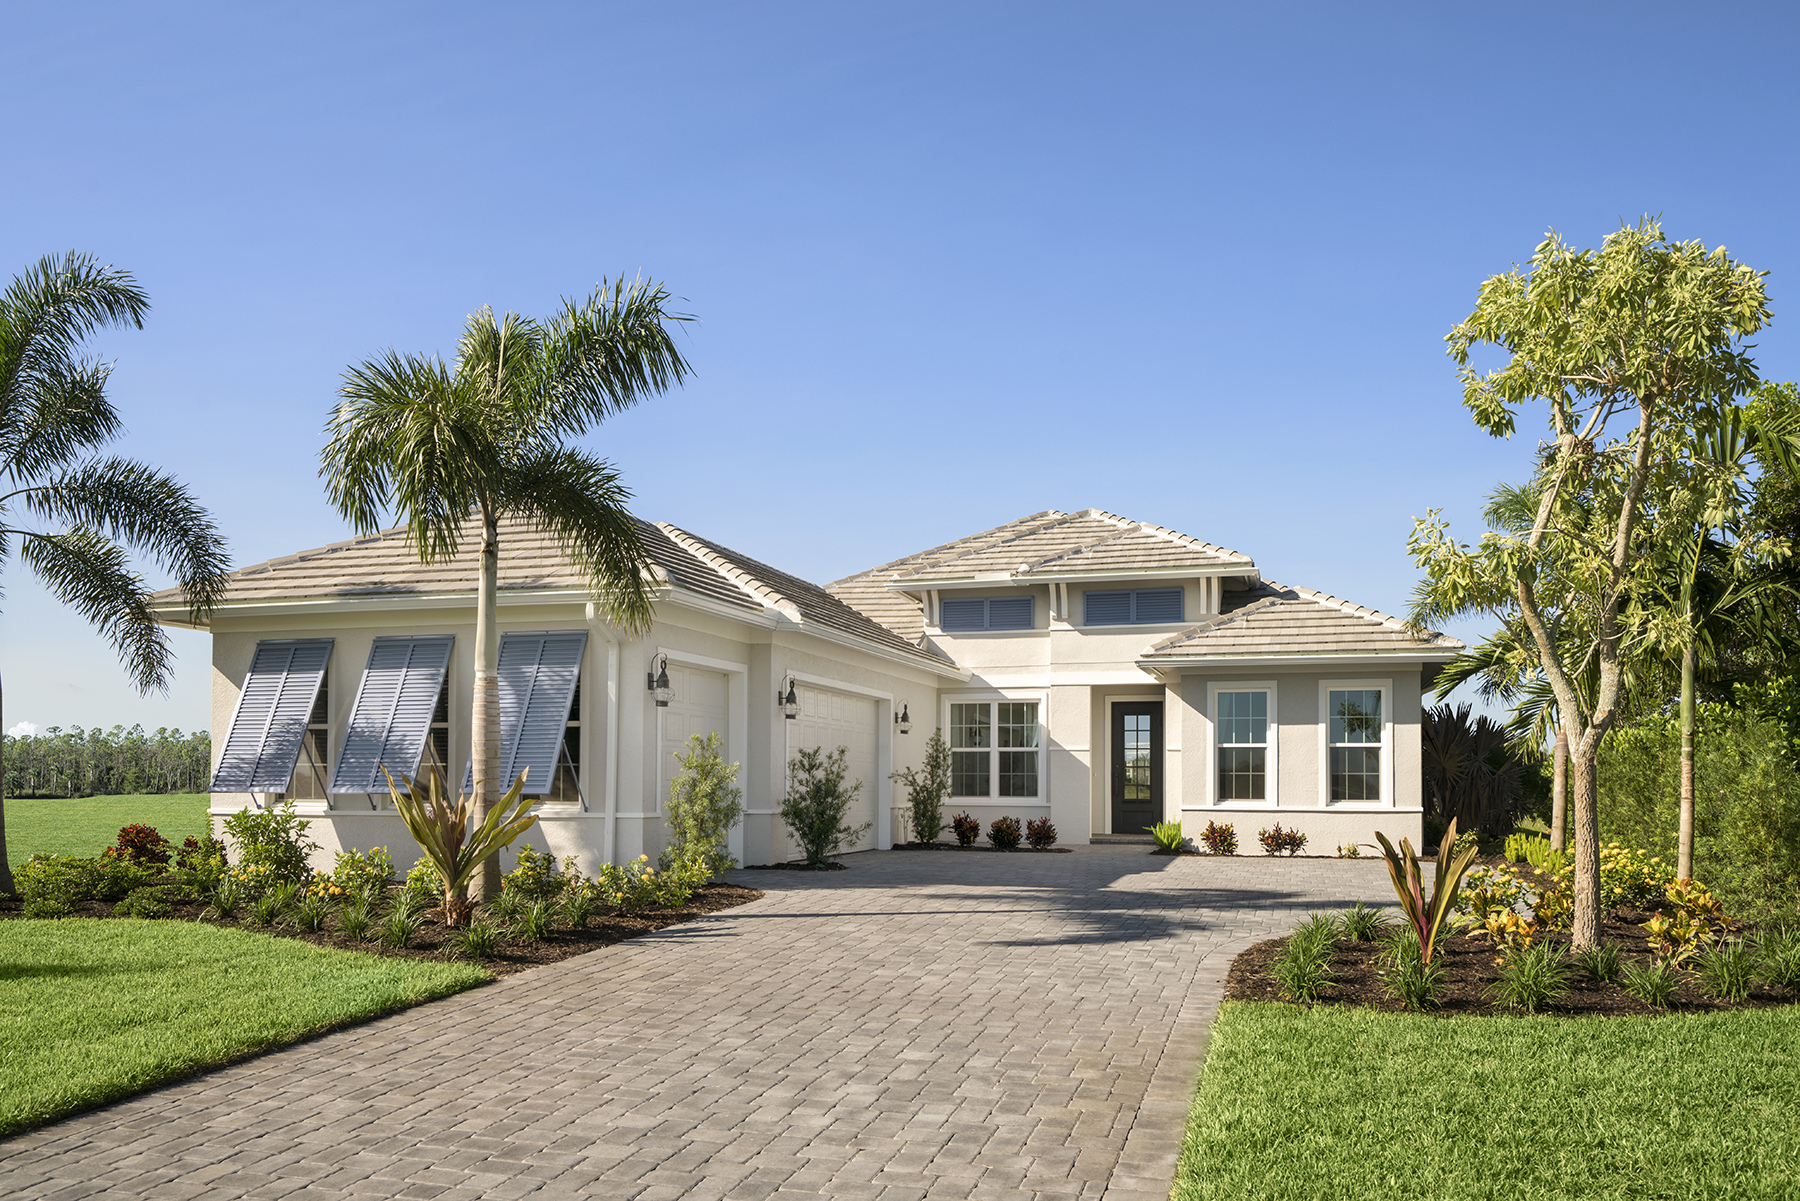 The Navarra Model At Marsh Cove At Fiddlers Creek Naples FL